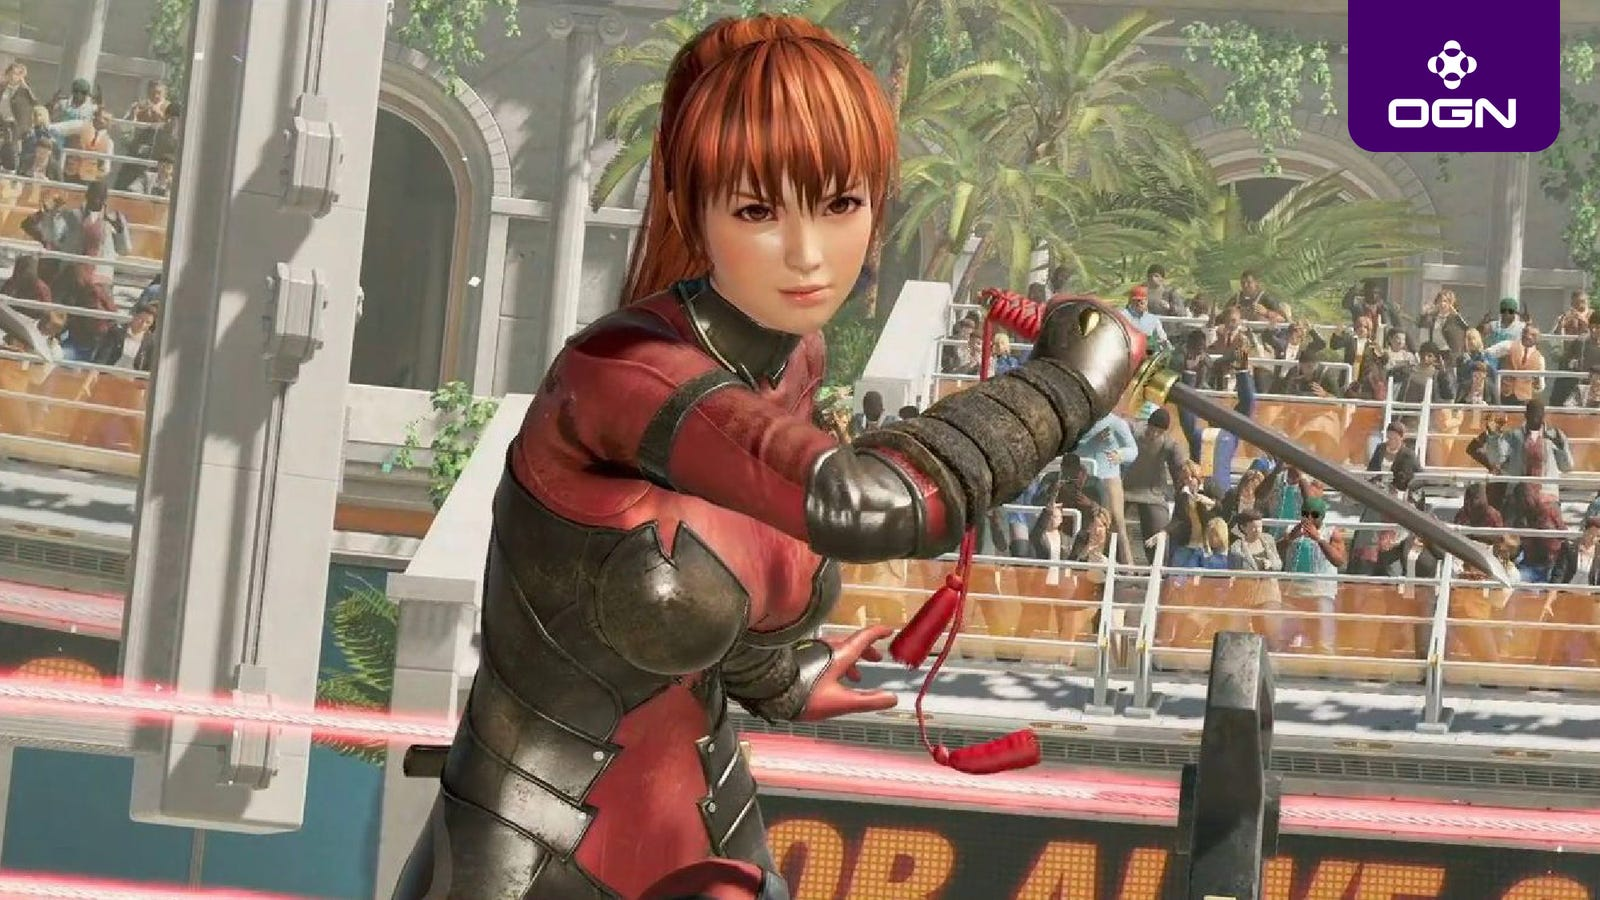 Feminist Gamers Rejoice: Dead Or Alive 6's Female Characters All Have Huge, Jiggling Breasts Because Every Woman Should Feel Beautiful